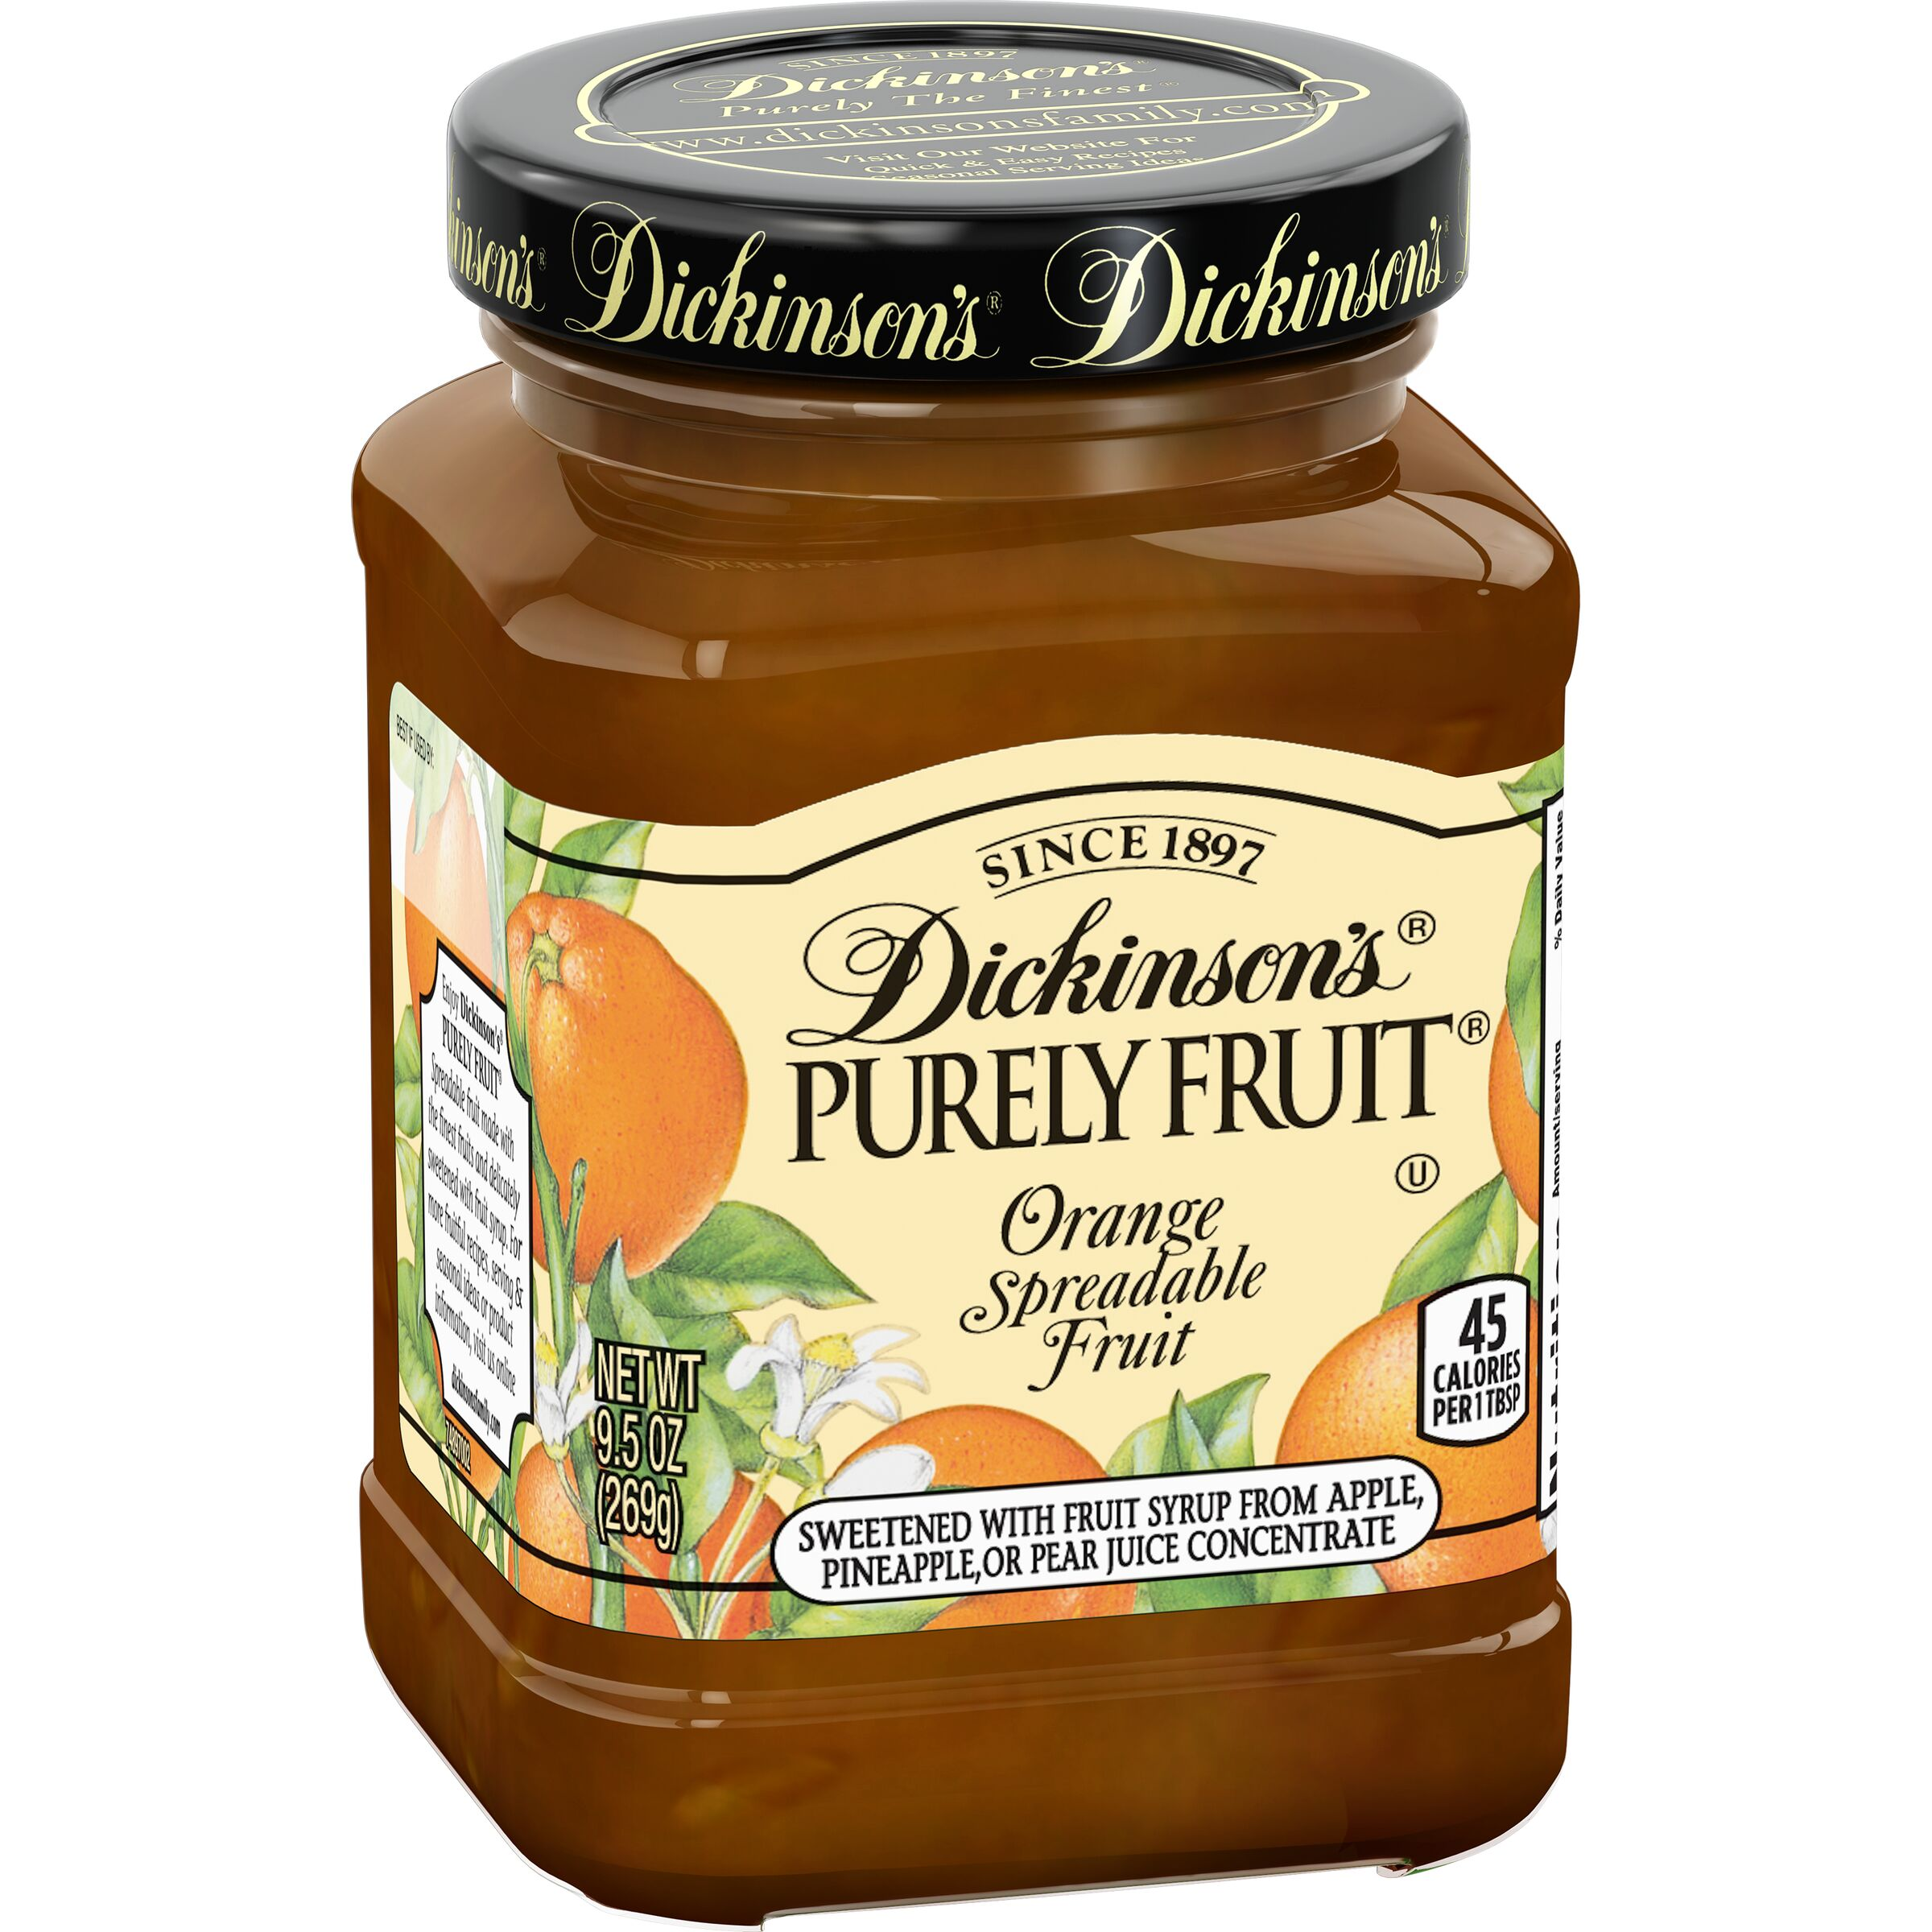 Dickinson's<sup>®</sup> Purely Fruit Orange Spreadable Fruit